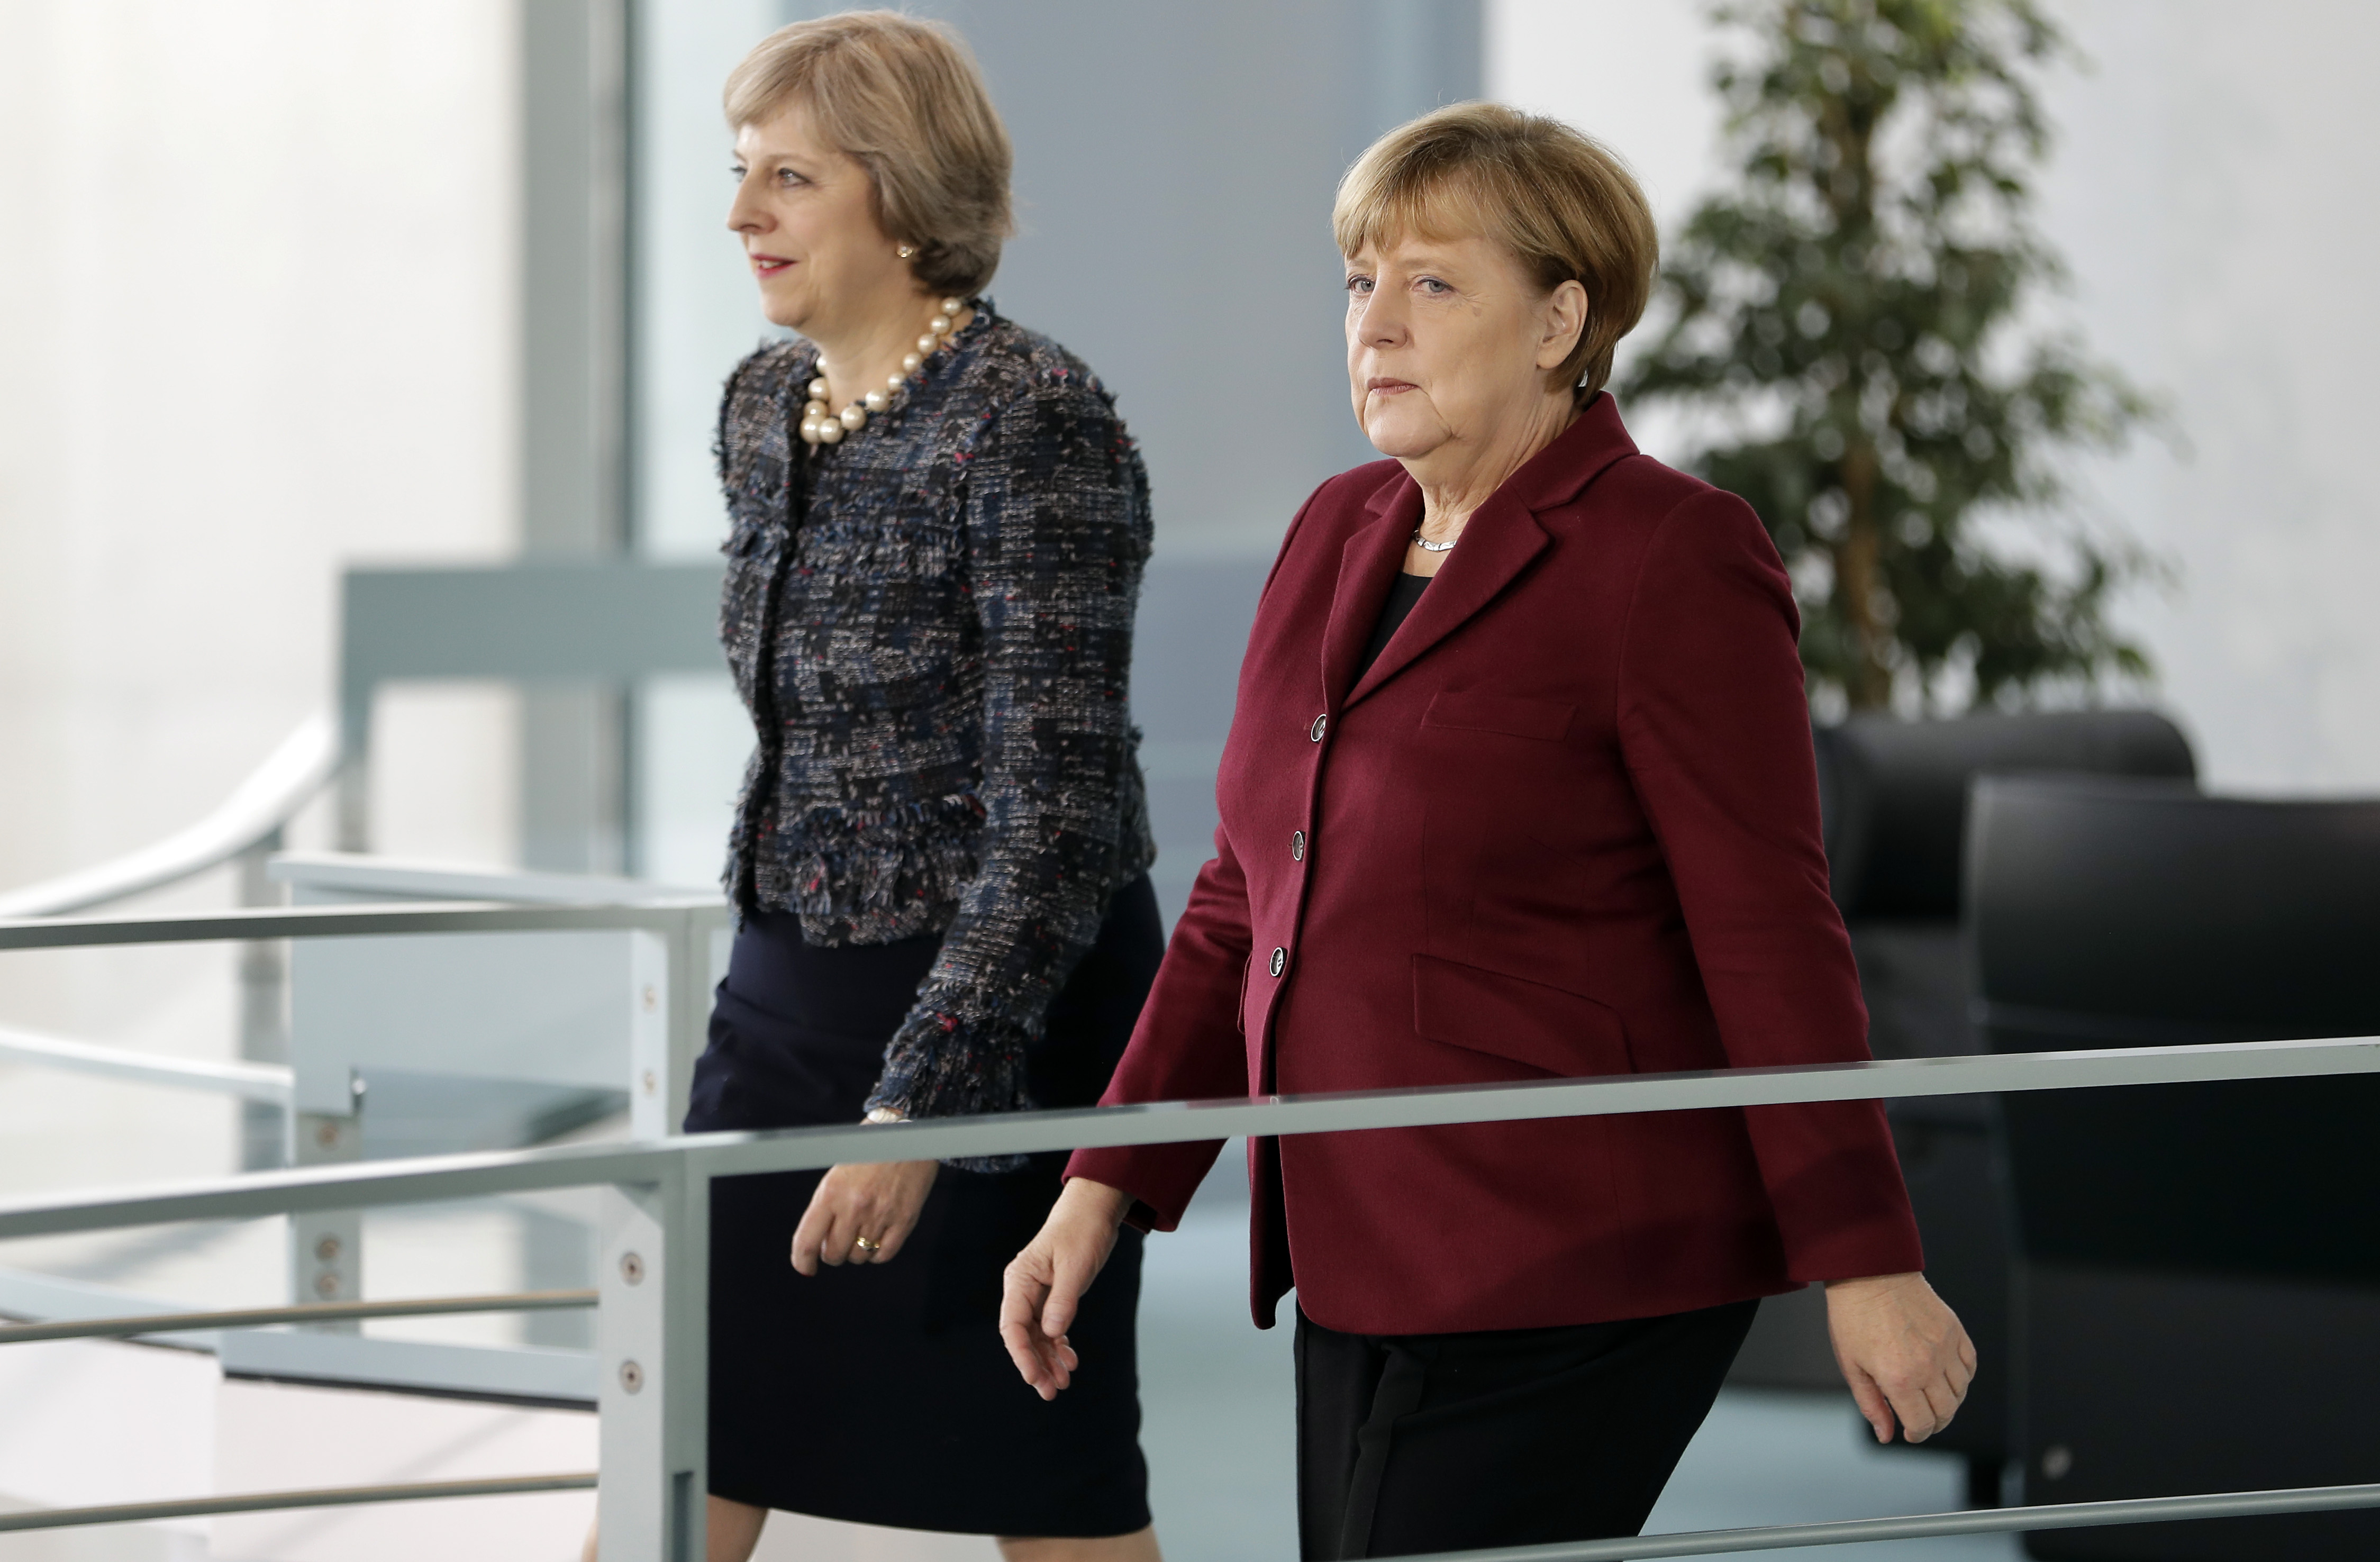 German Chancellor Angela Merkel (R) and Britain's Prime Minister Theresa May arrive for a statement prior to a meeting at the Chancellery in Berlin, Germany, on November 18, 2016. / AFP / POOL / Michael Sohn (Photo credit should read MICHAEL SOHN/AFP/Getty Images)